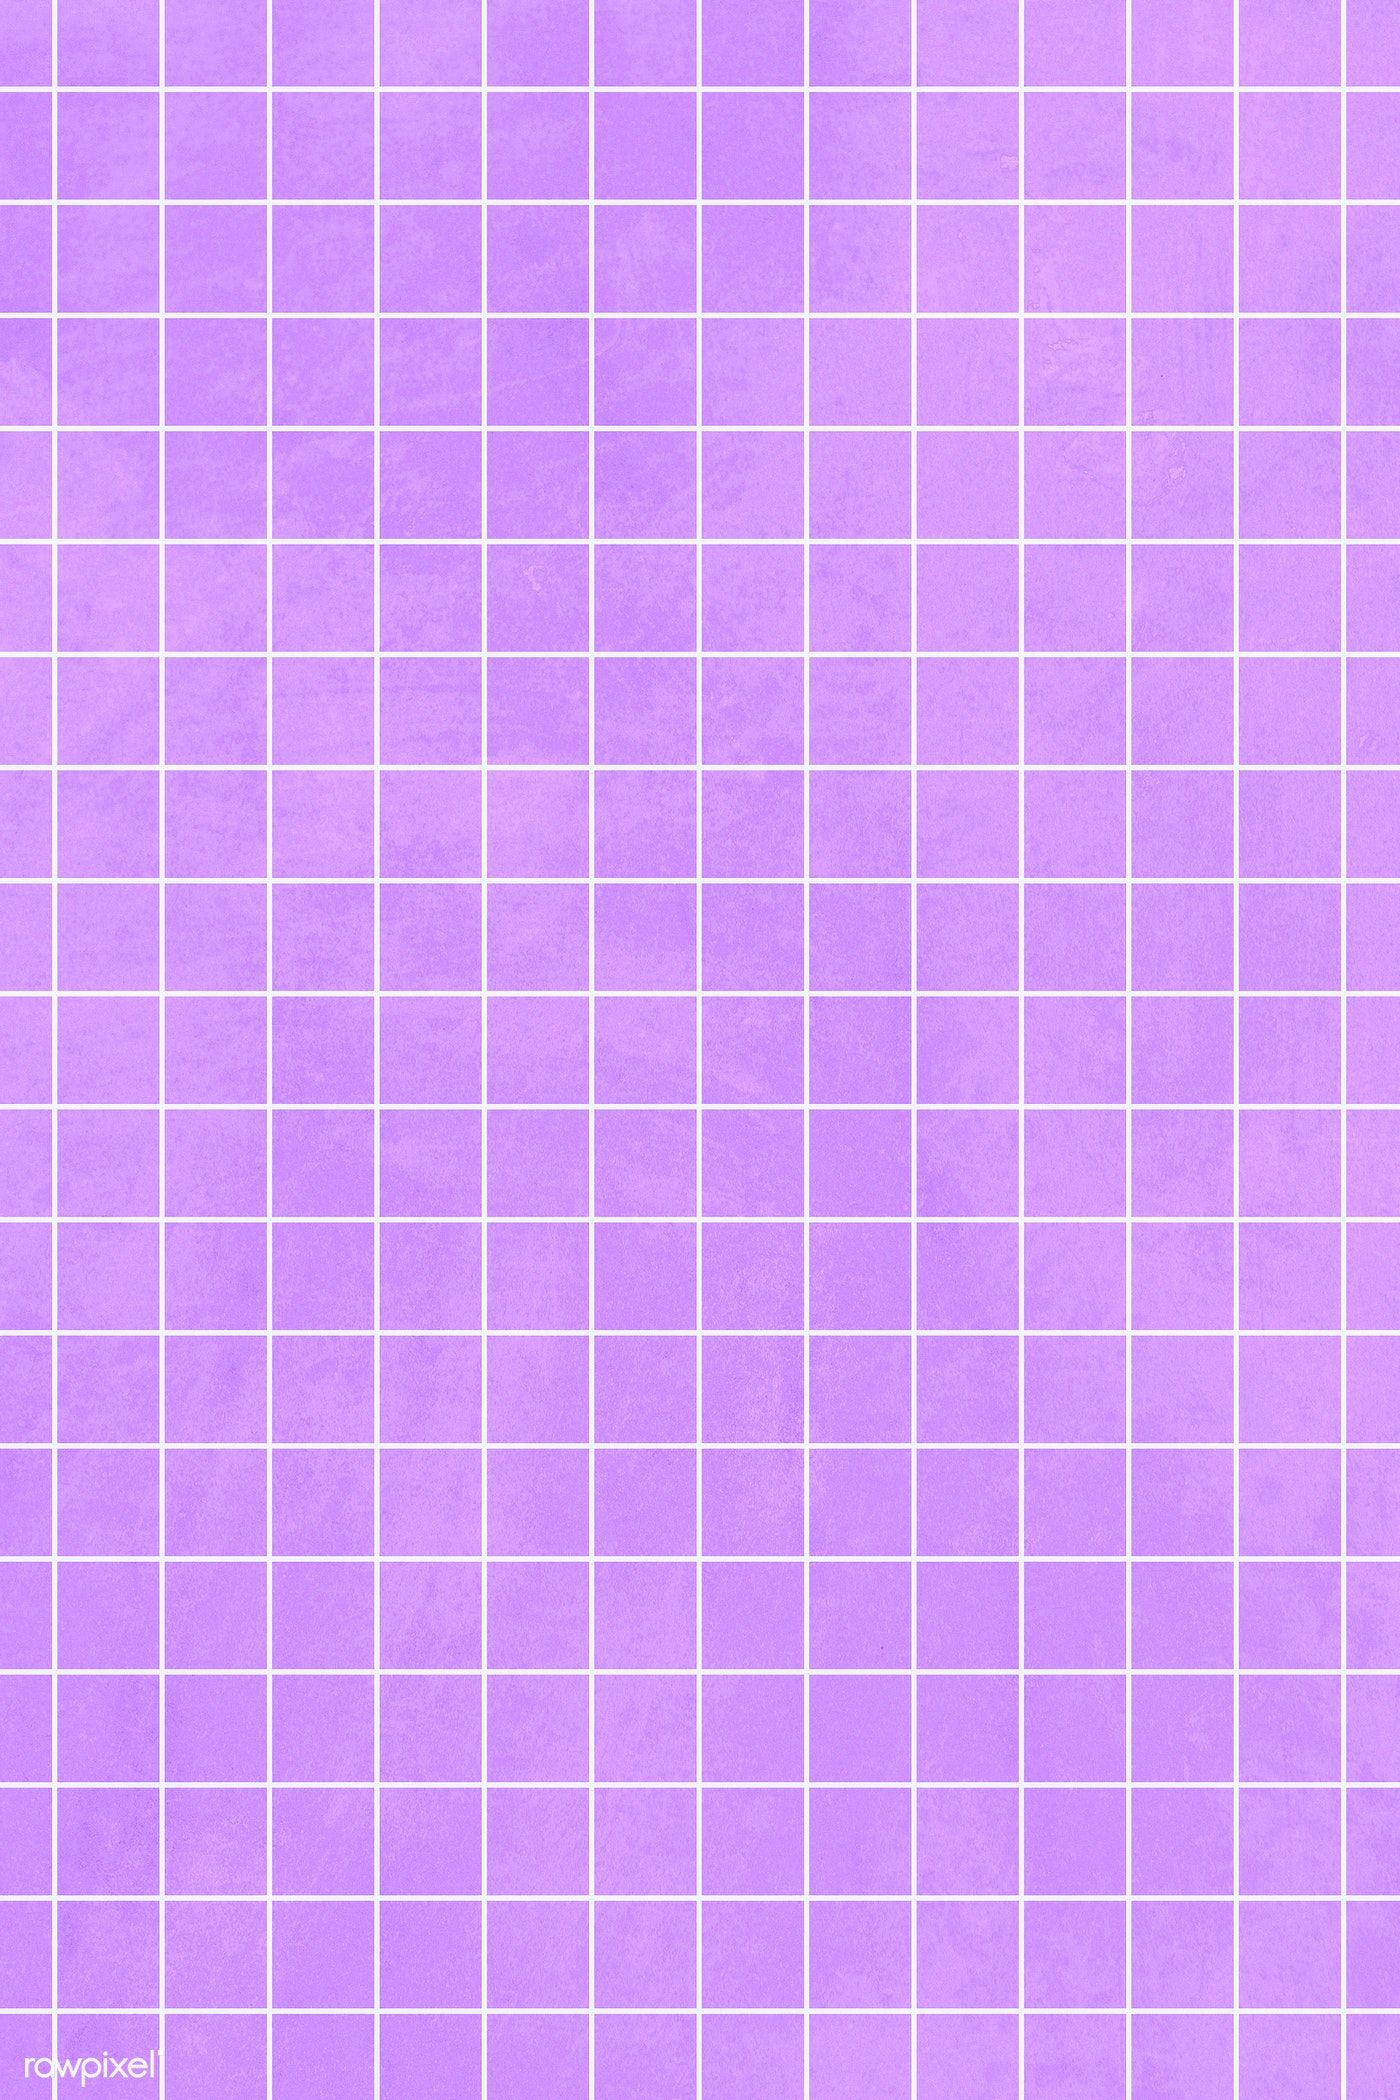 Download Premium Illustration Of Purple Tile Wall Pattern Background Purple Aesthetic Background Wall Patterns Grid Wallpaper